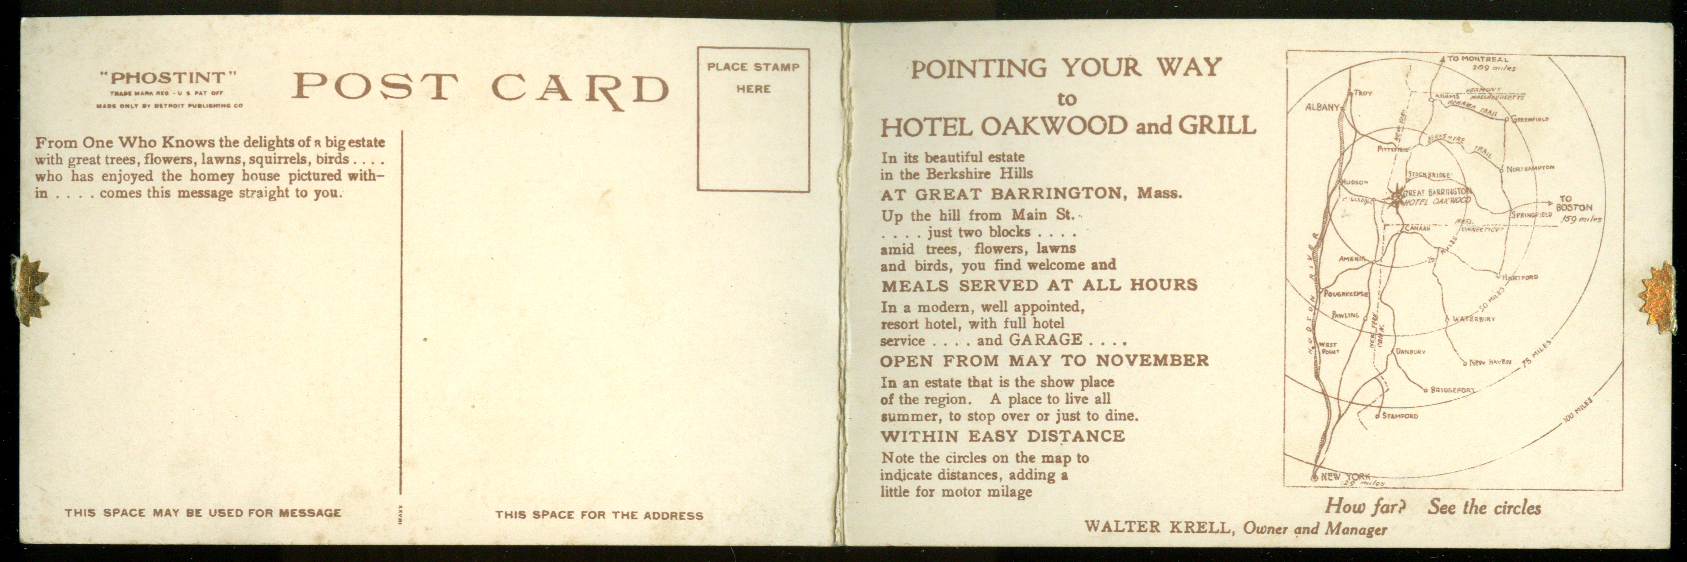 Hotel Oakwood Great Barrington MA oversize folding postcard ca 1910